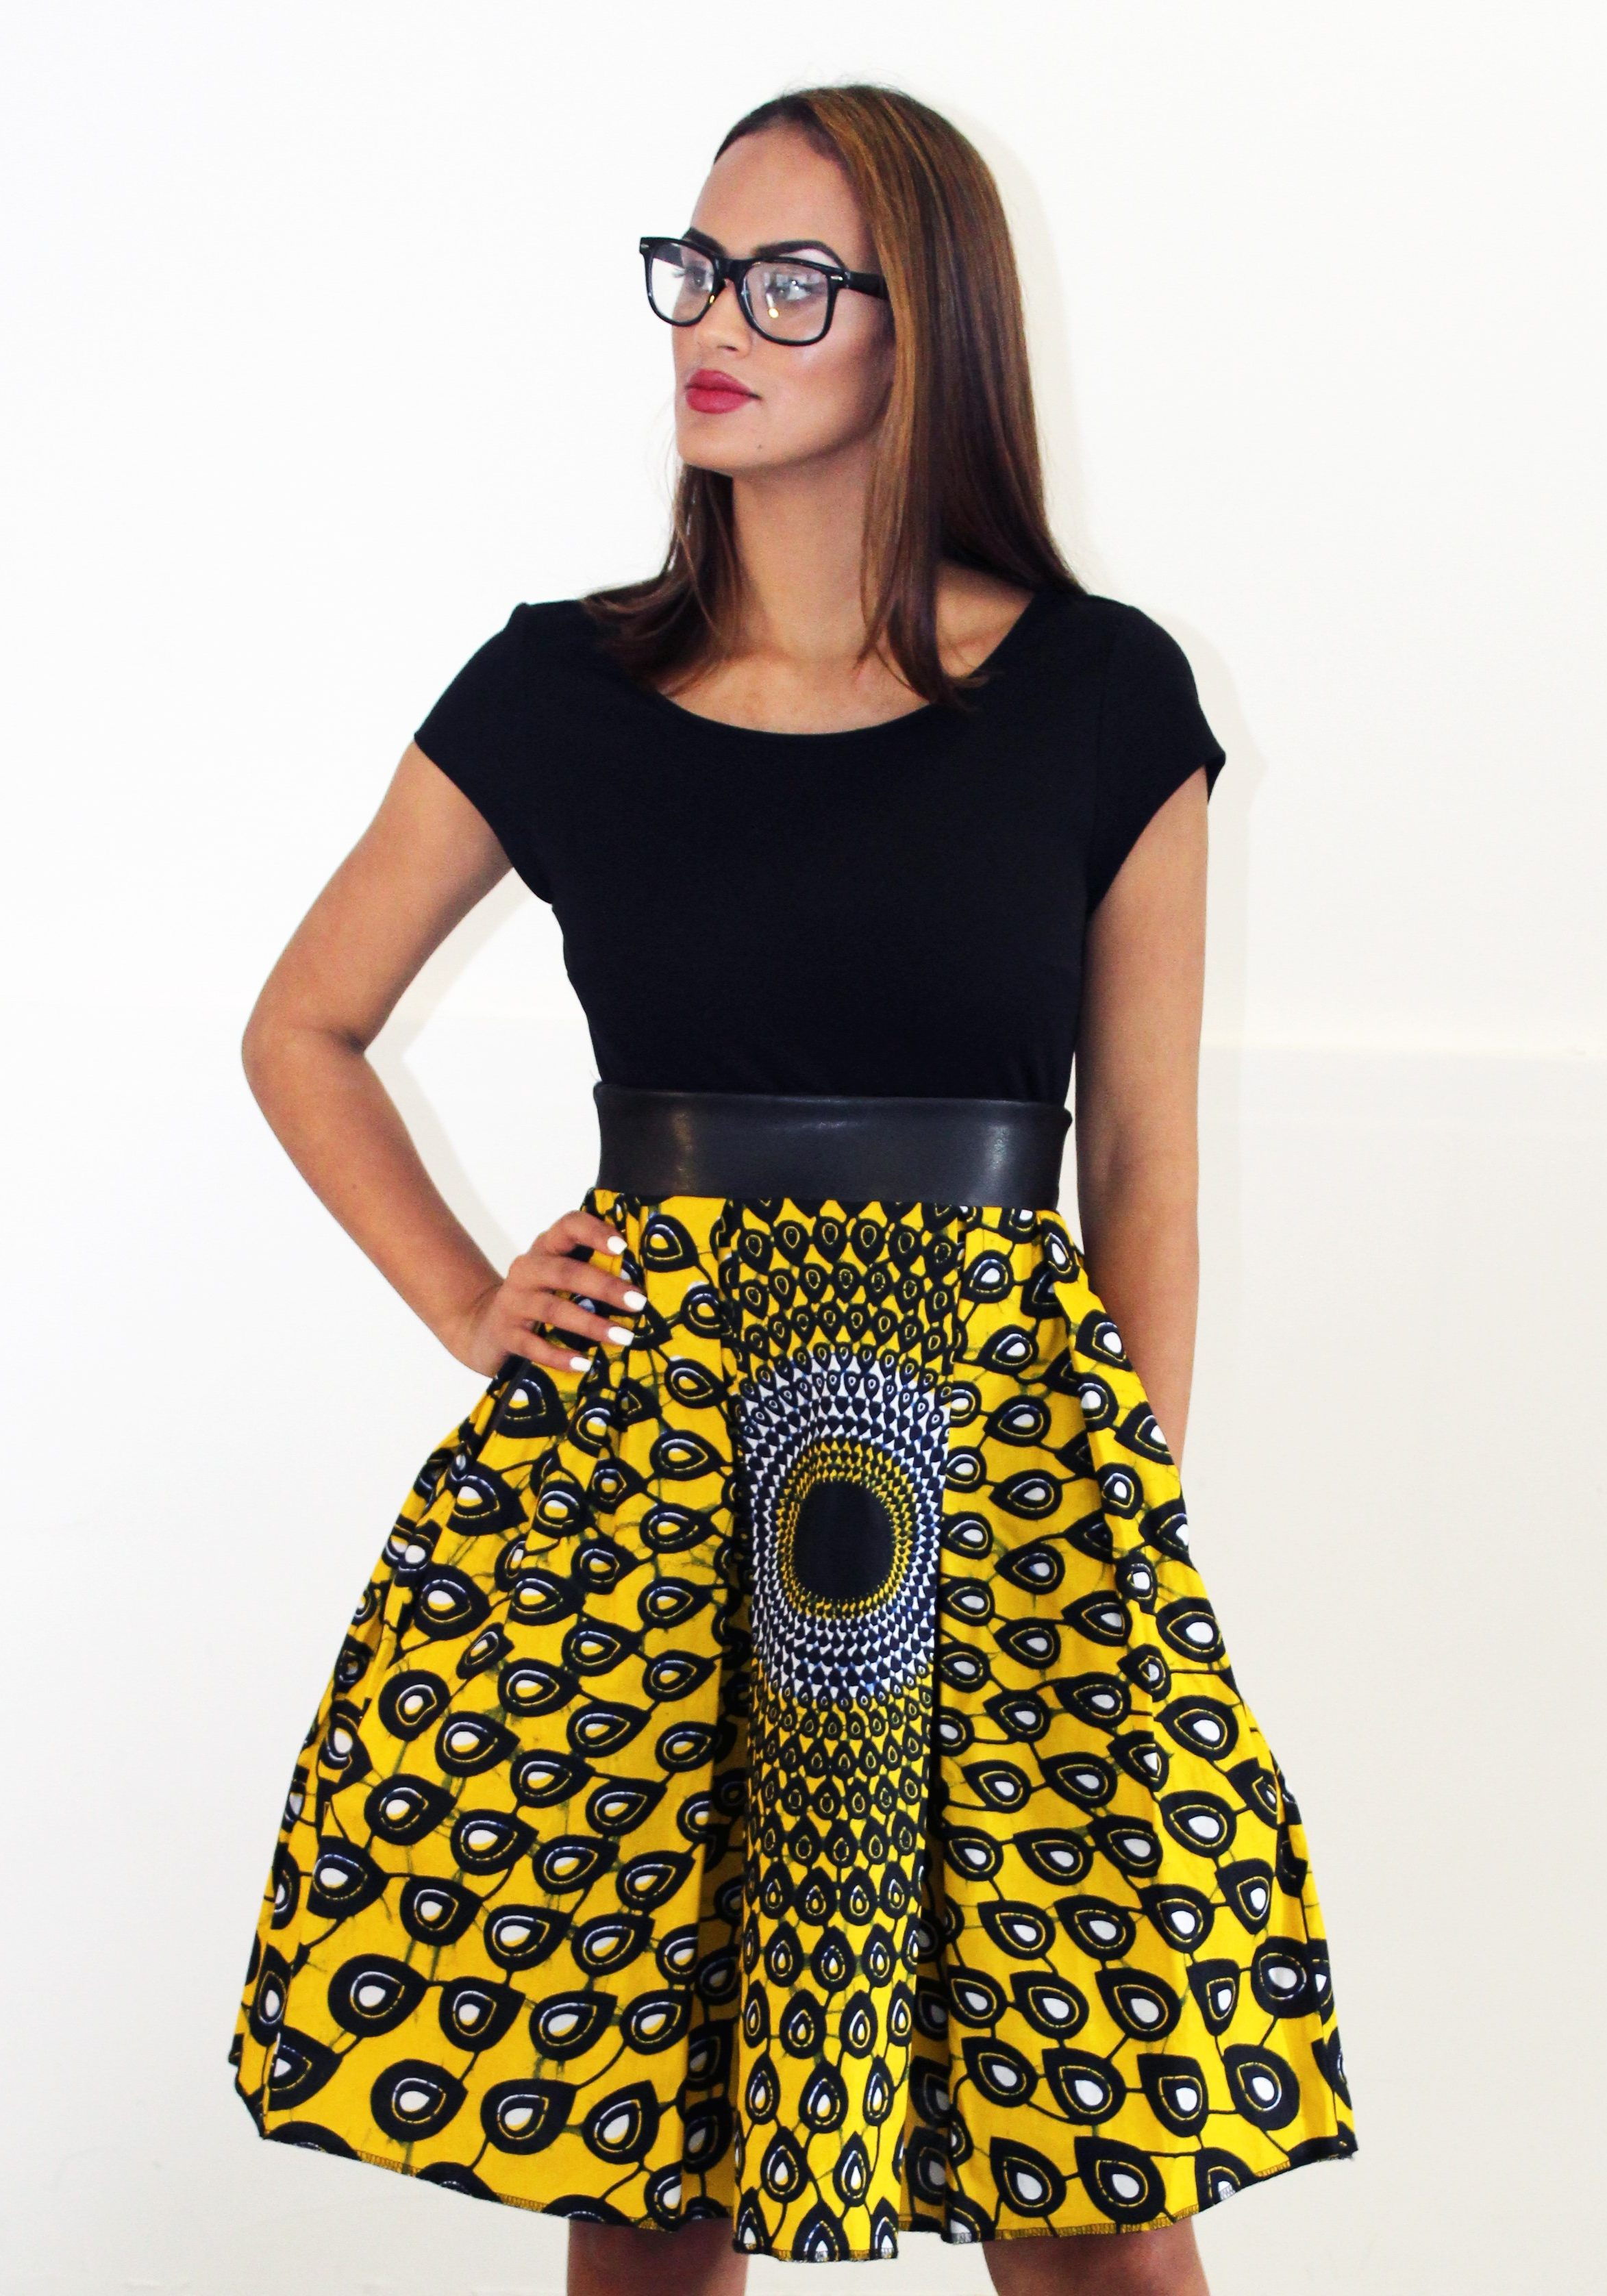 The Afrika Skirt by What's Your Skirt